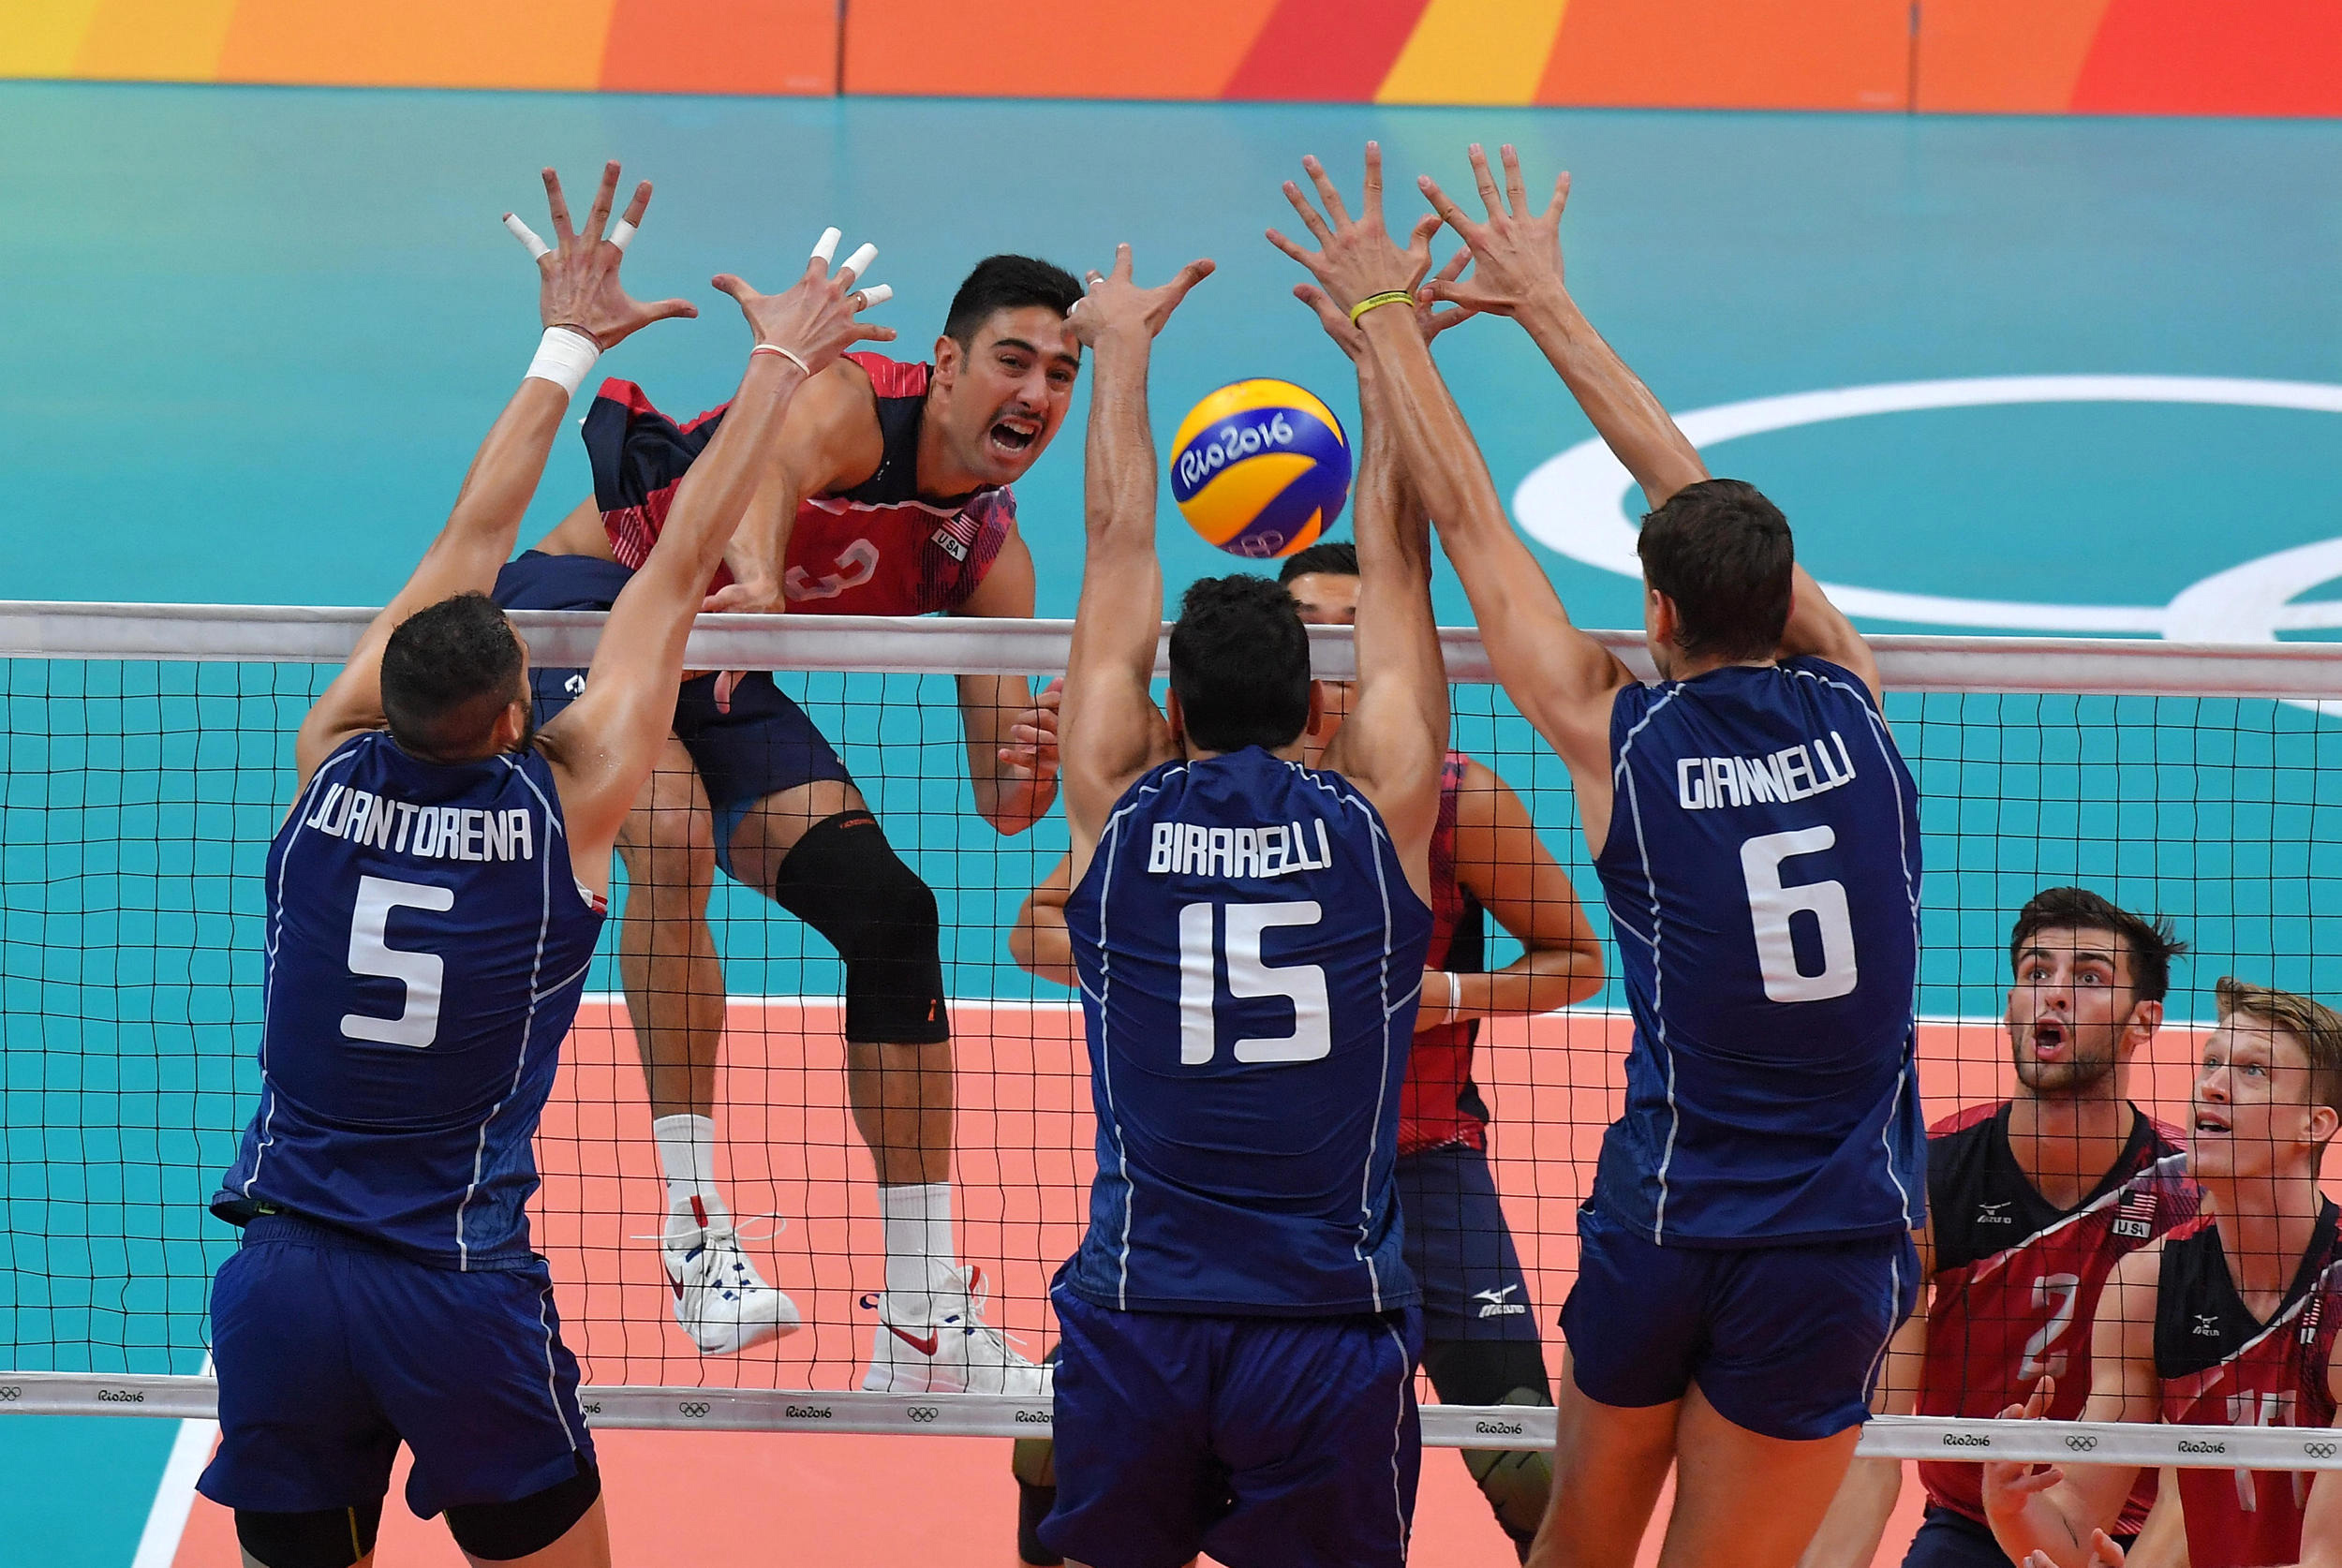 http://www.fivb.org/Vis2009/Images/GetImage.asmx?No=201653317&maxSize=960